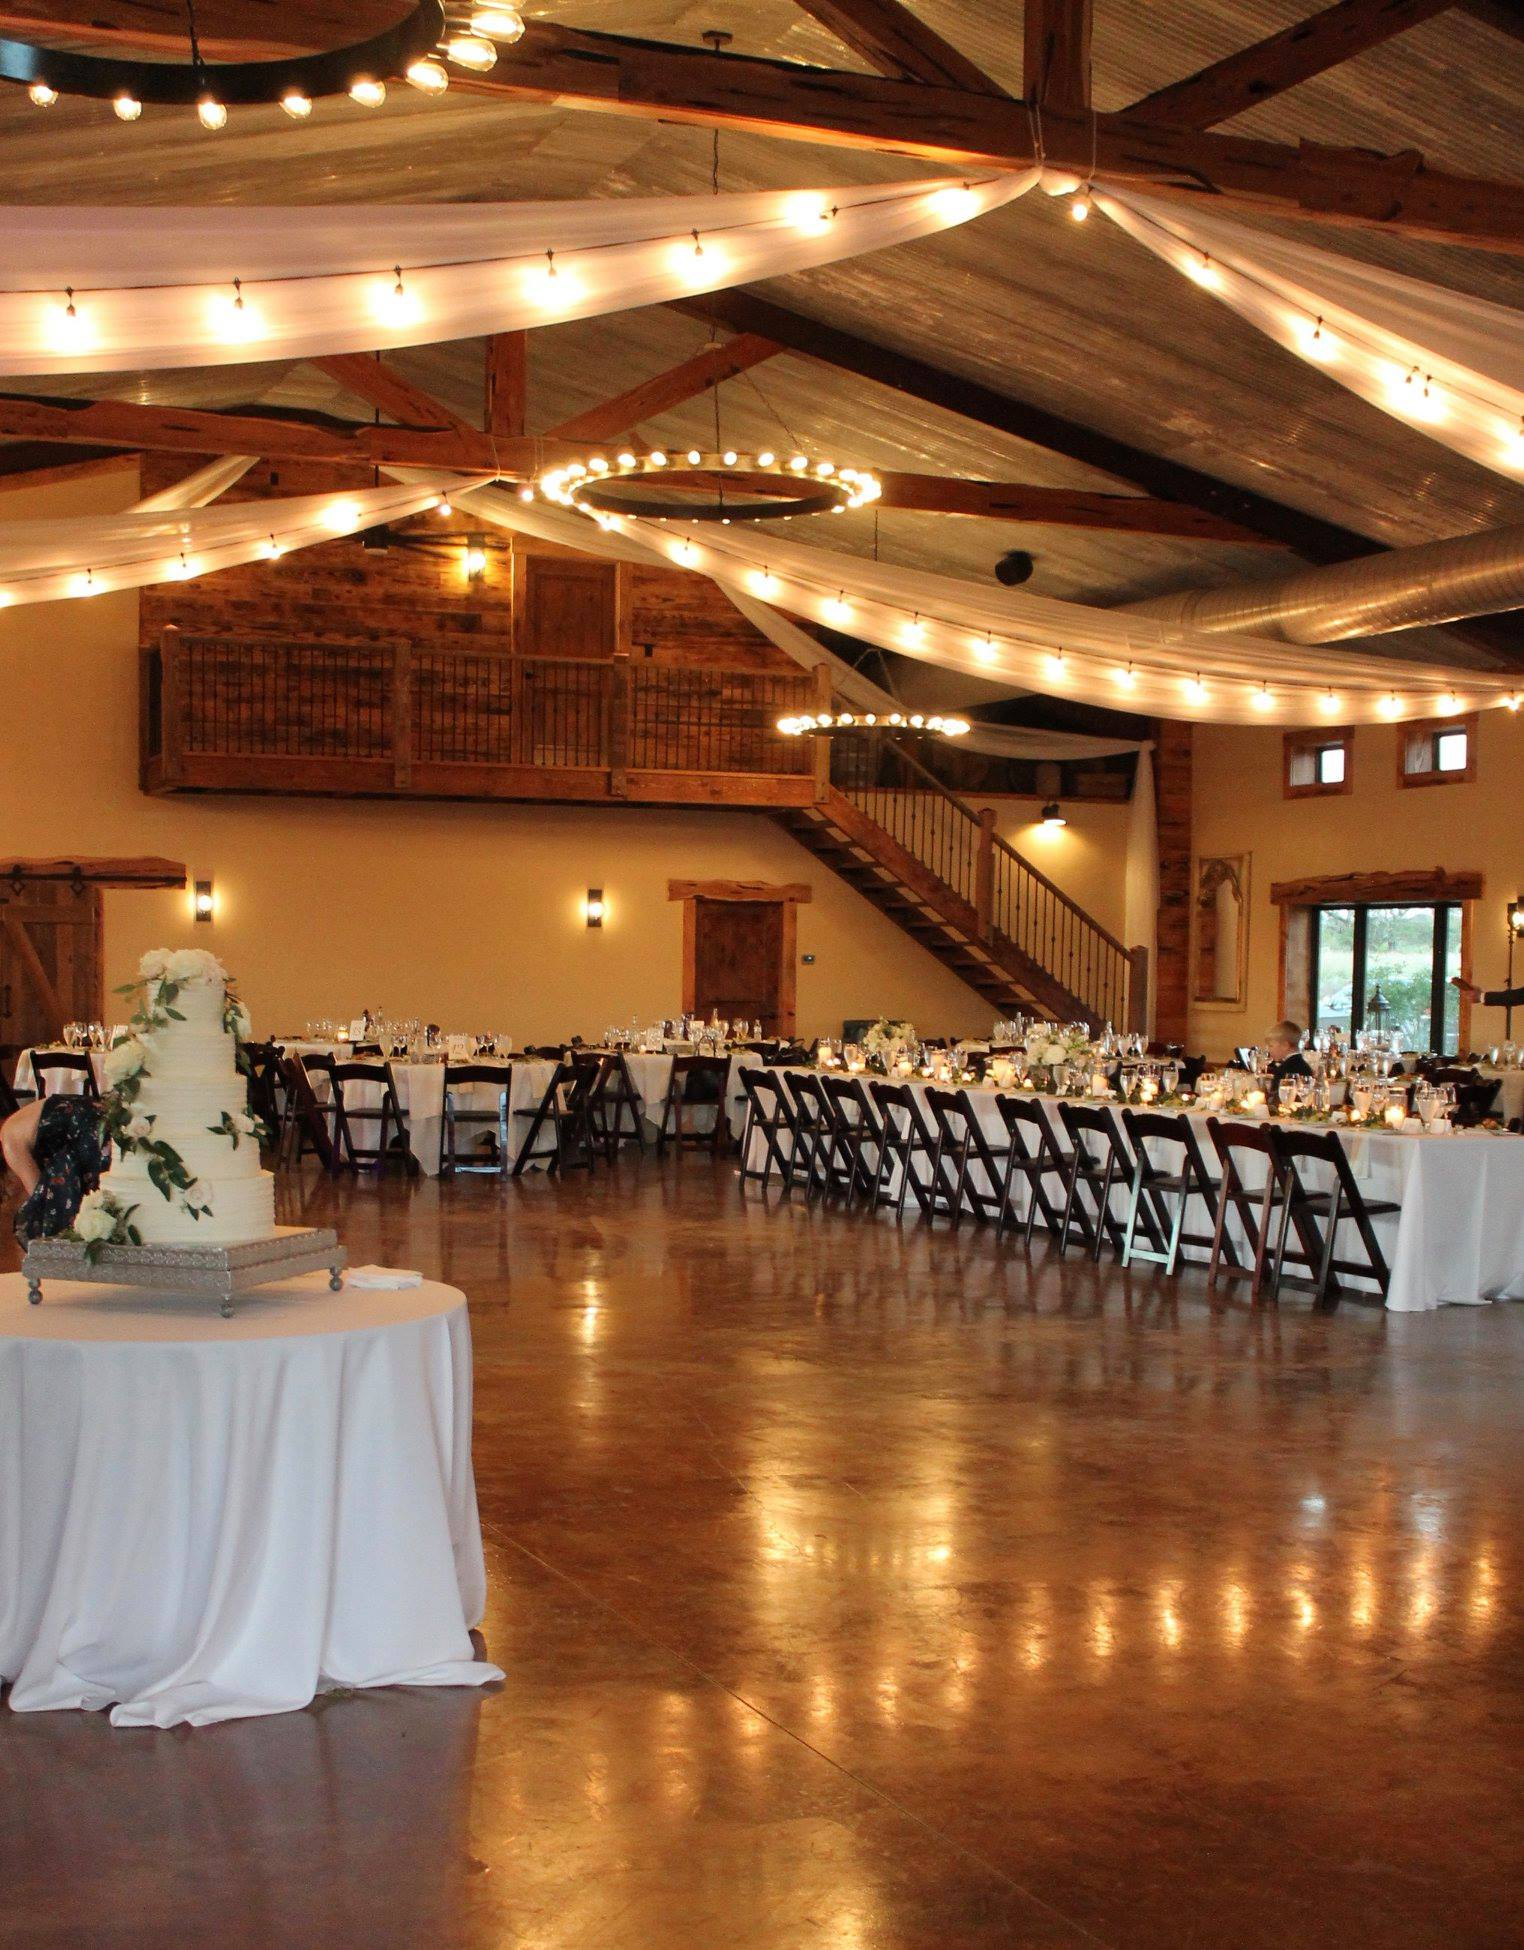 The Venue - Come on out to Rafter E Ranch to experience Texas charm at it's finest! Our venue is quietly secluded amongst the Pedernales Valley, yet only six miles from Fredericksburg's Historic District and the Wine Trails. With sprawling views of the Texas Hill Country, our rustic banquet hall rests amongst towering 100-year-old oaks, fields of wild flowers, and abundant wildlife.The Venue offers beautiful indoor and outdoor ceremony sites to create your dream setting. One of the largest venues in the area, we can accommodate 350+ guest effortlessly. In addition to a generous seating area, our 10,000 square foot barn has his/hers private suites with full baths as well as a spacious staging kitchen and bar area. The open design offers endless possibilities for your next event.A one day rental from 8 am through 12 am would include tables, chairs, ceremony sites, break down and much more. Additional packages for weekdays, rehearsal dinners, and non profit organizations. Our team is committed to providing excellent support to help make any event a success.